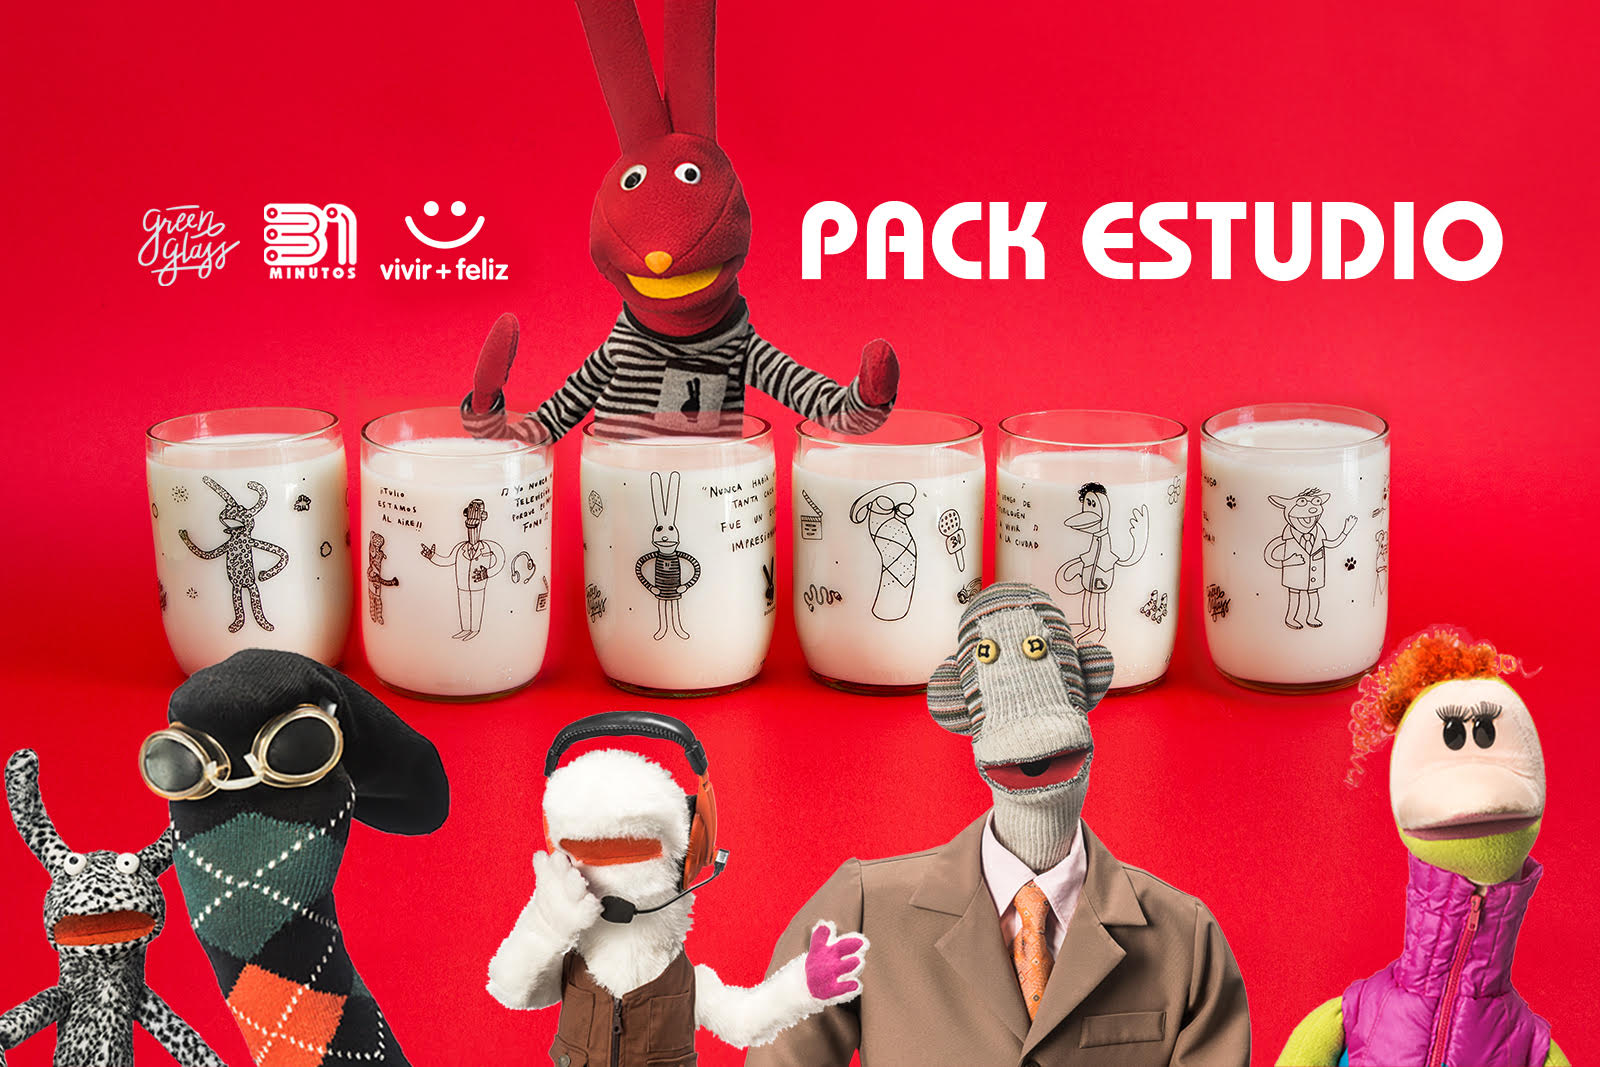 Pack Estudio 31 Minutos Juegos de 6 Vasitos 200 Ml